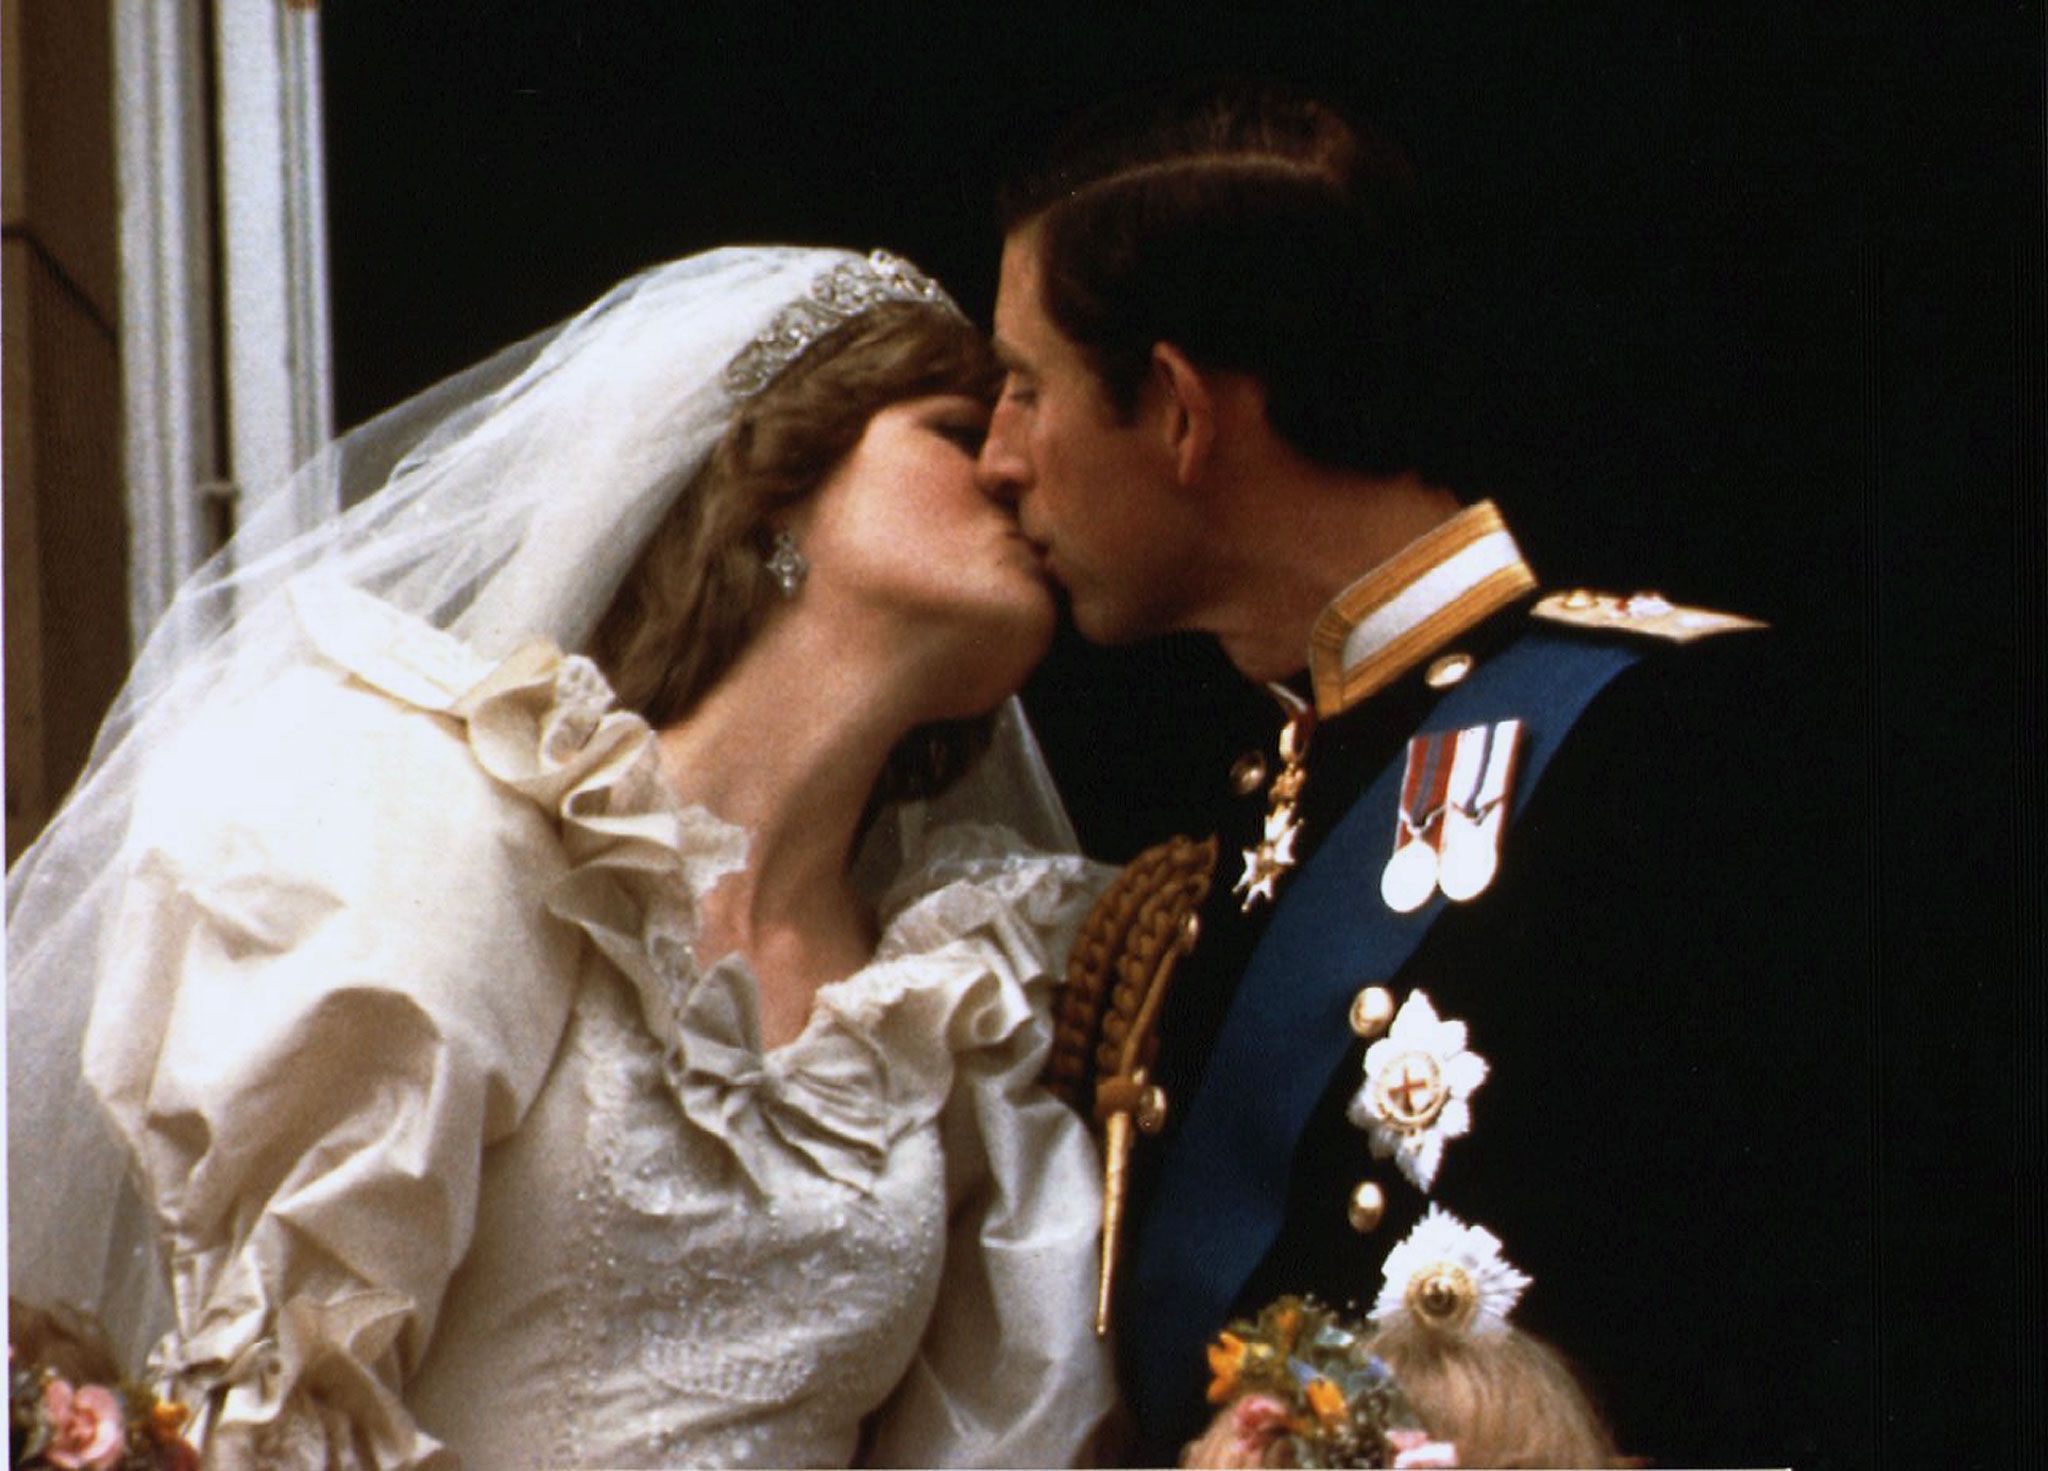 Charles And Diana Wedding.Princess Diana Had Terrifying Rages Before Royal Wedding To Prince